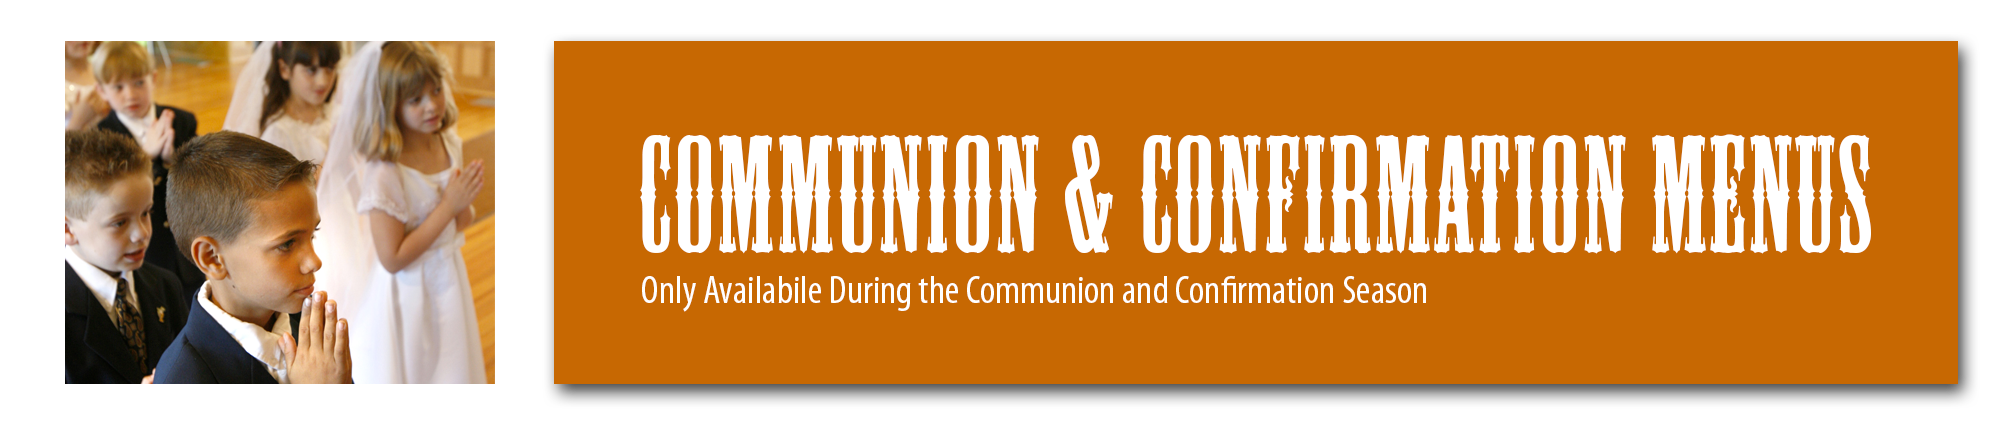 Special Offers for Communion and Confirmations